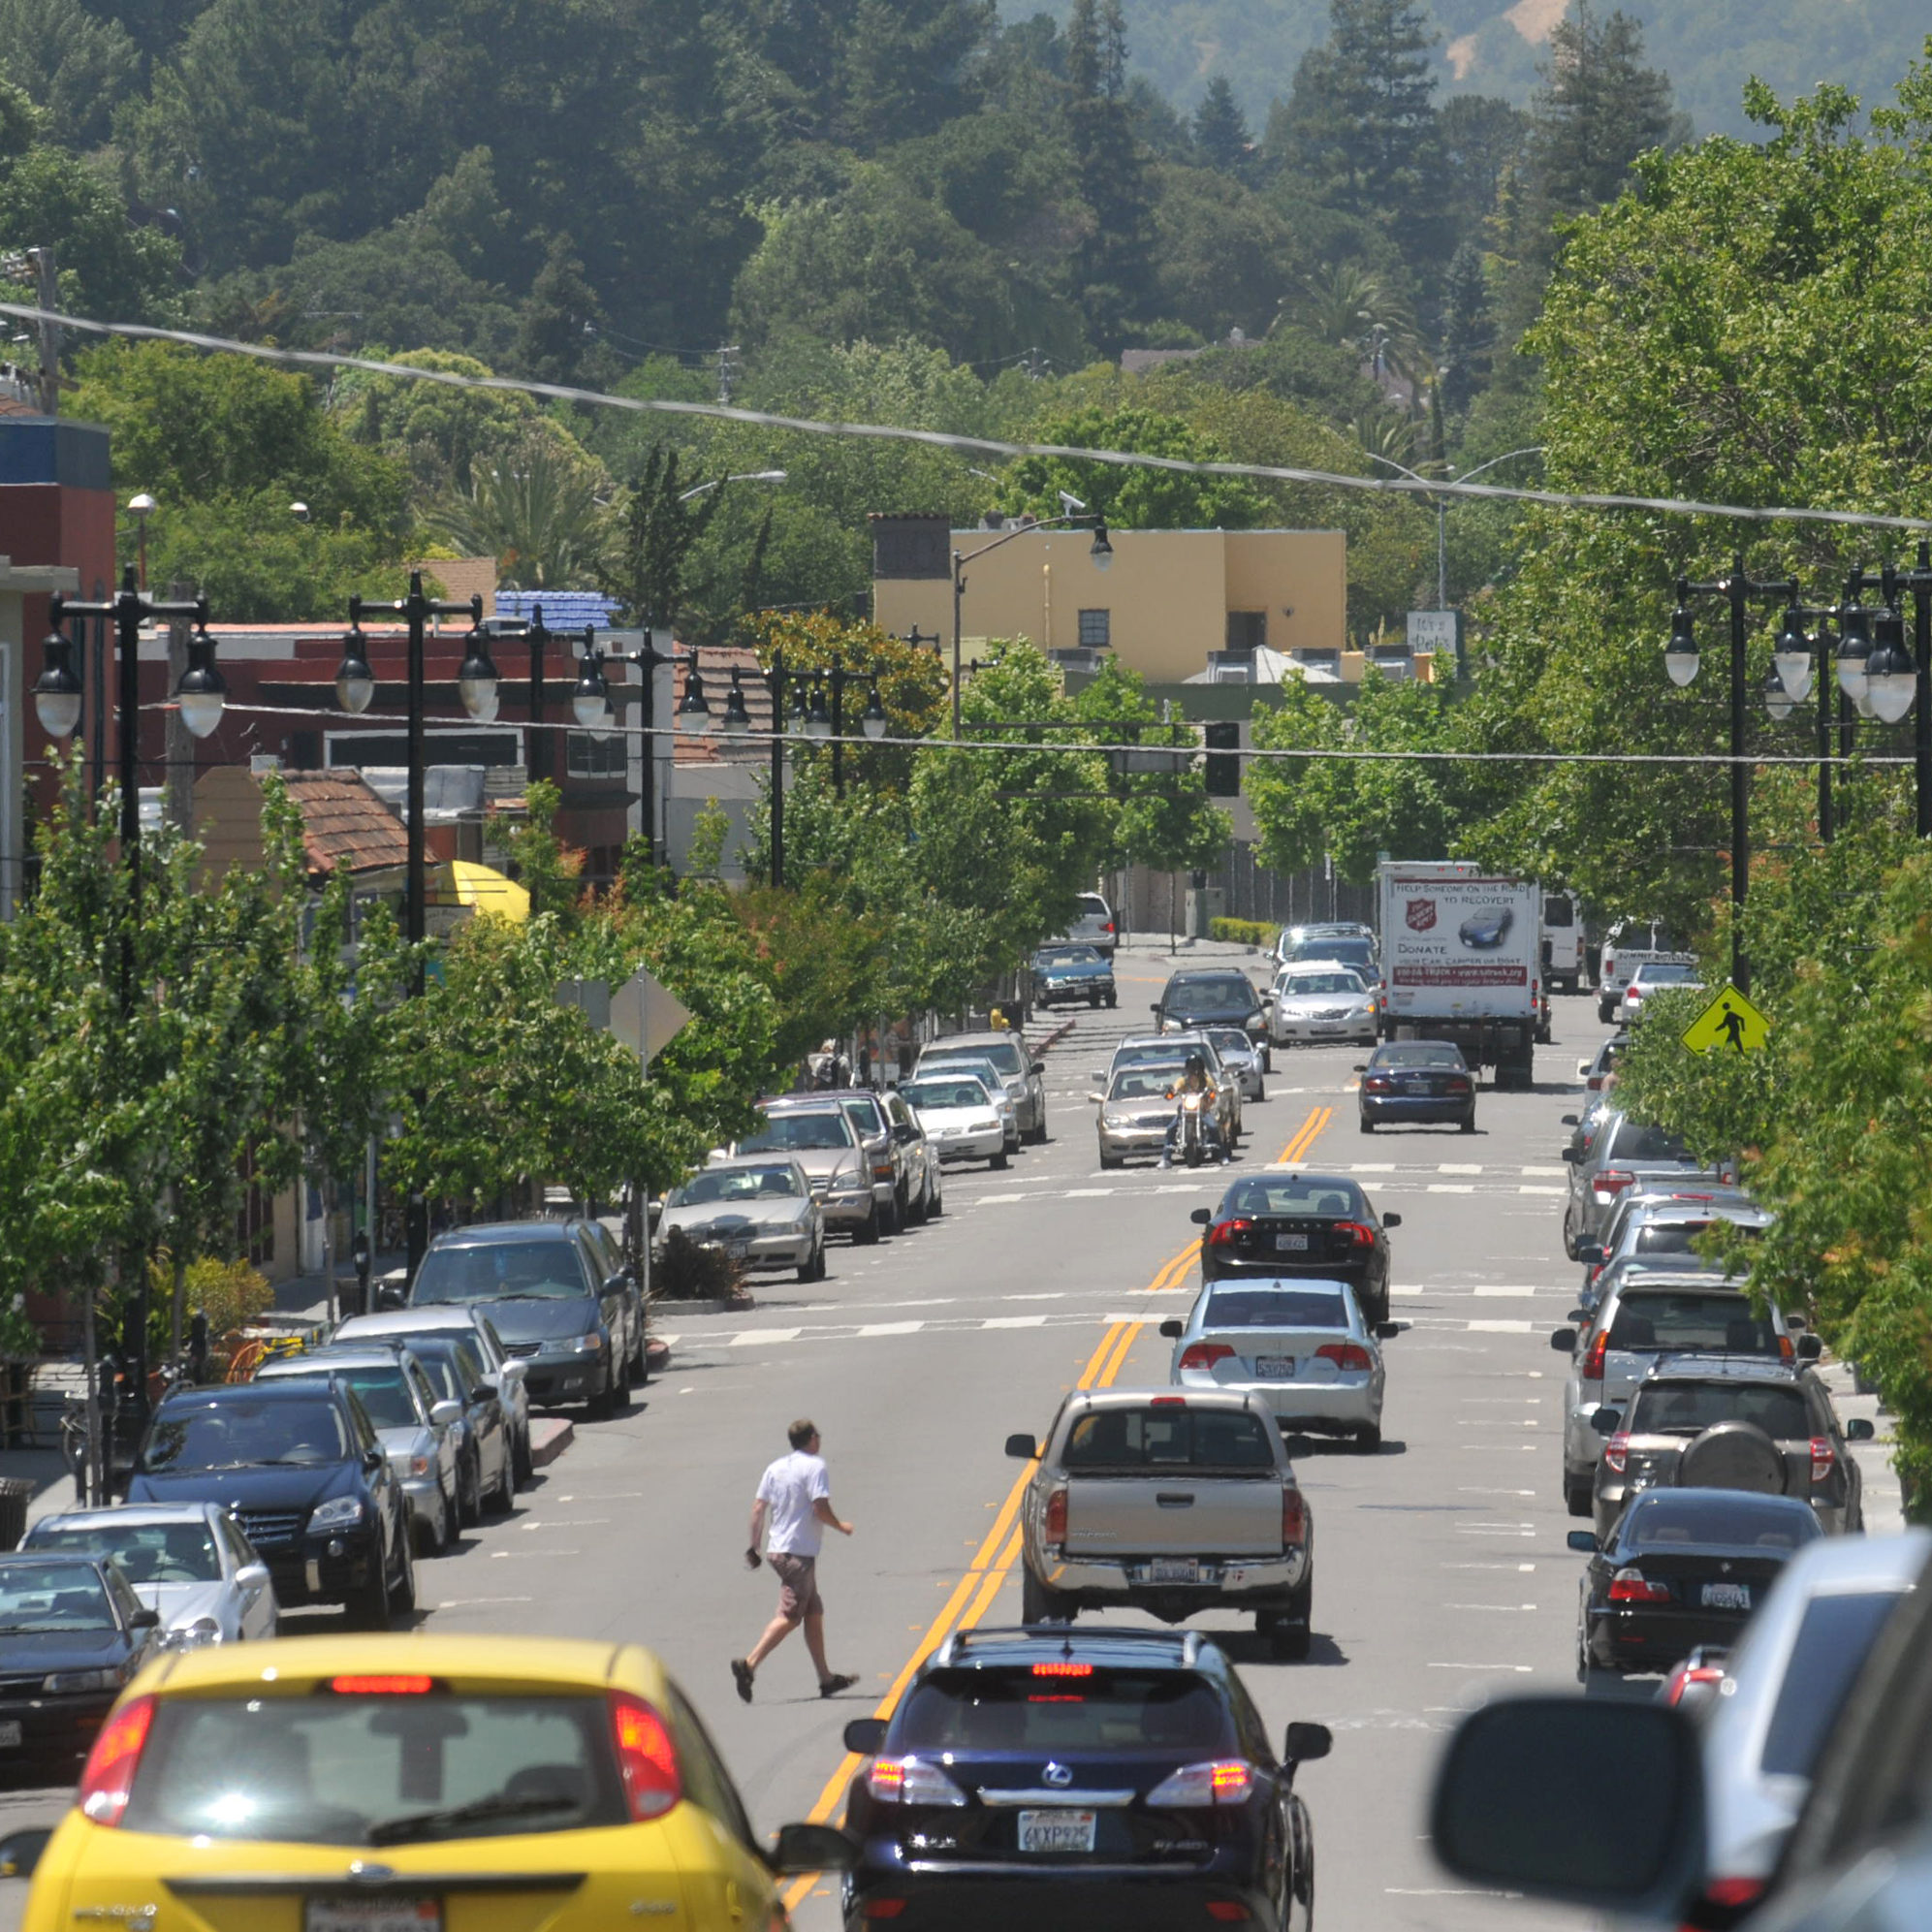 San Rafael City Council is collecting public comment on plans to expand downtown business improvement district, which will includes Fourth Street from E Street to the Miracle Mile. (IJ archive photo/Frankie Frost)